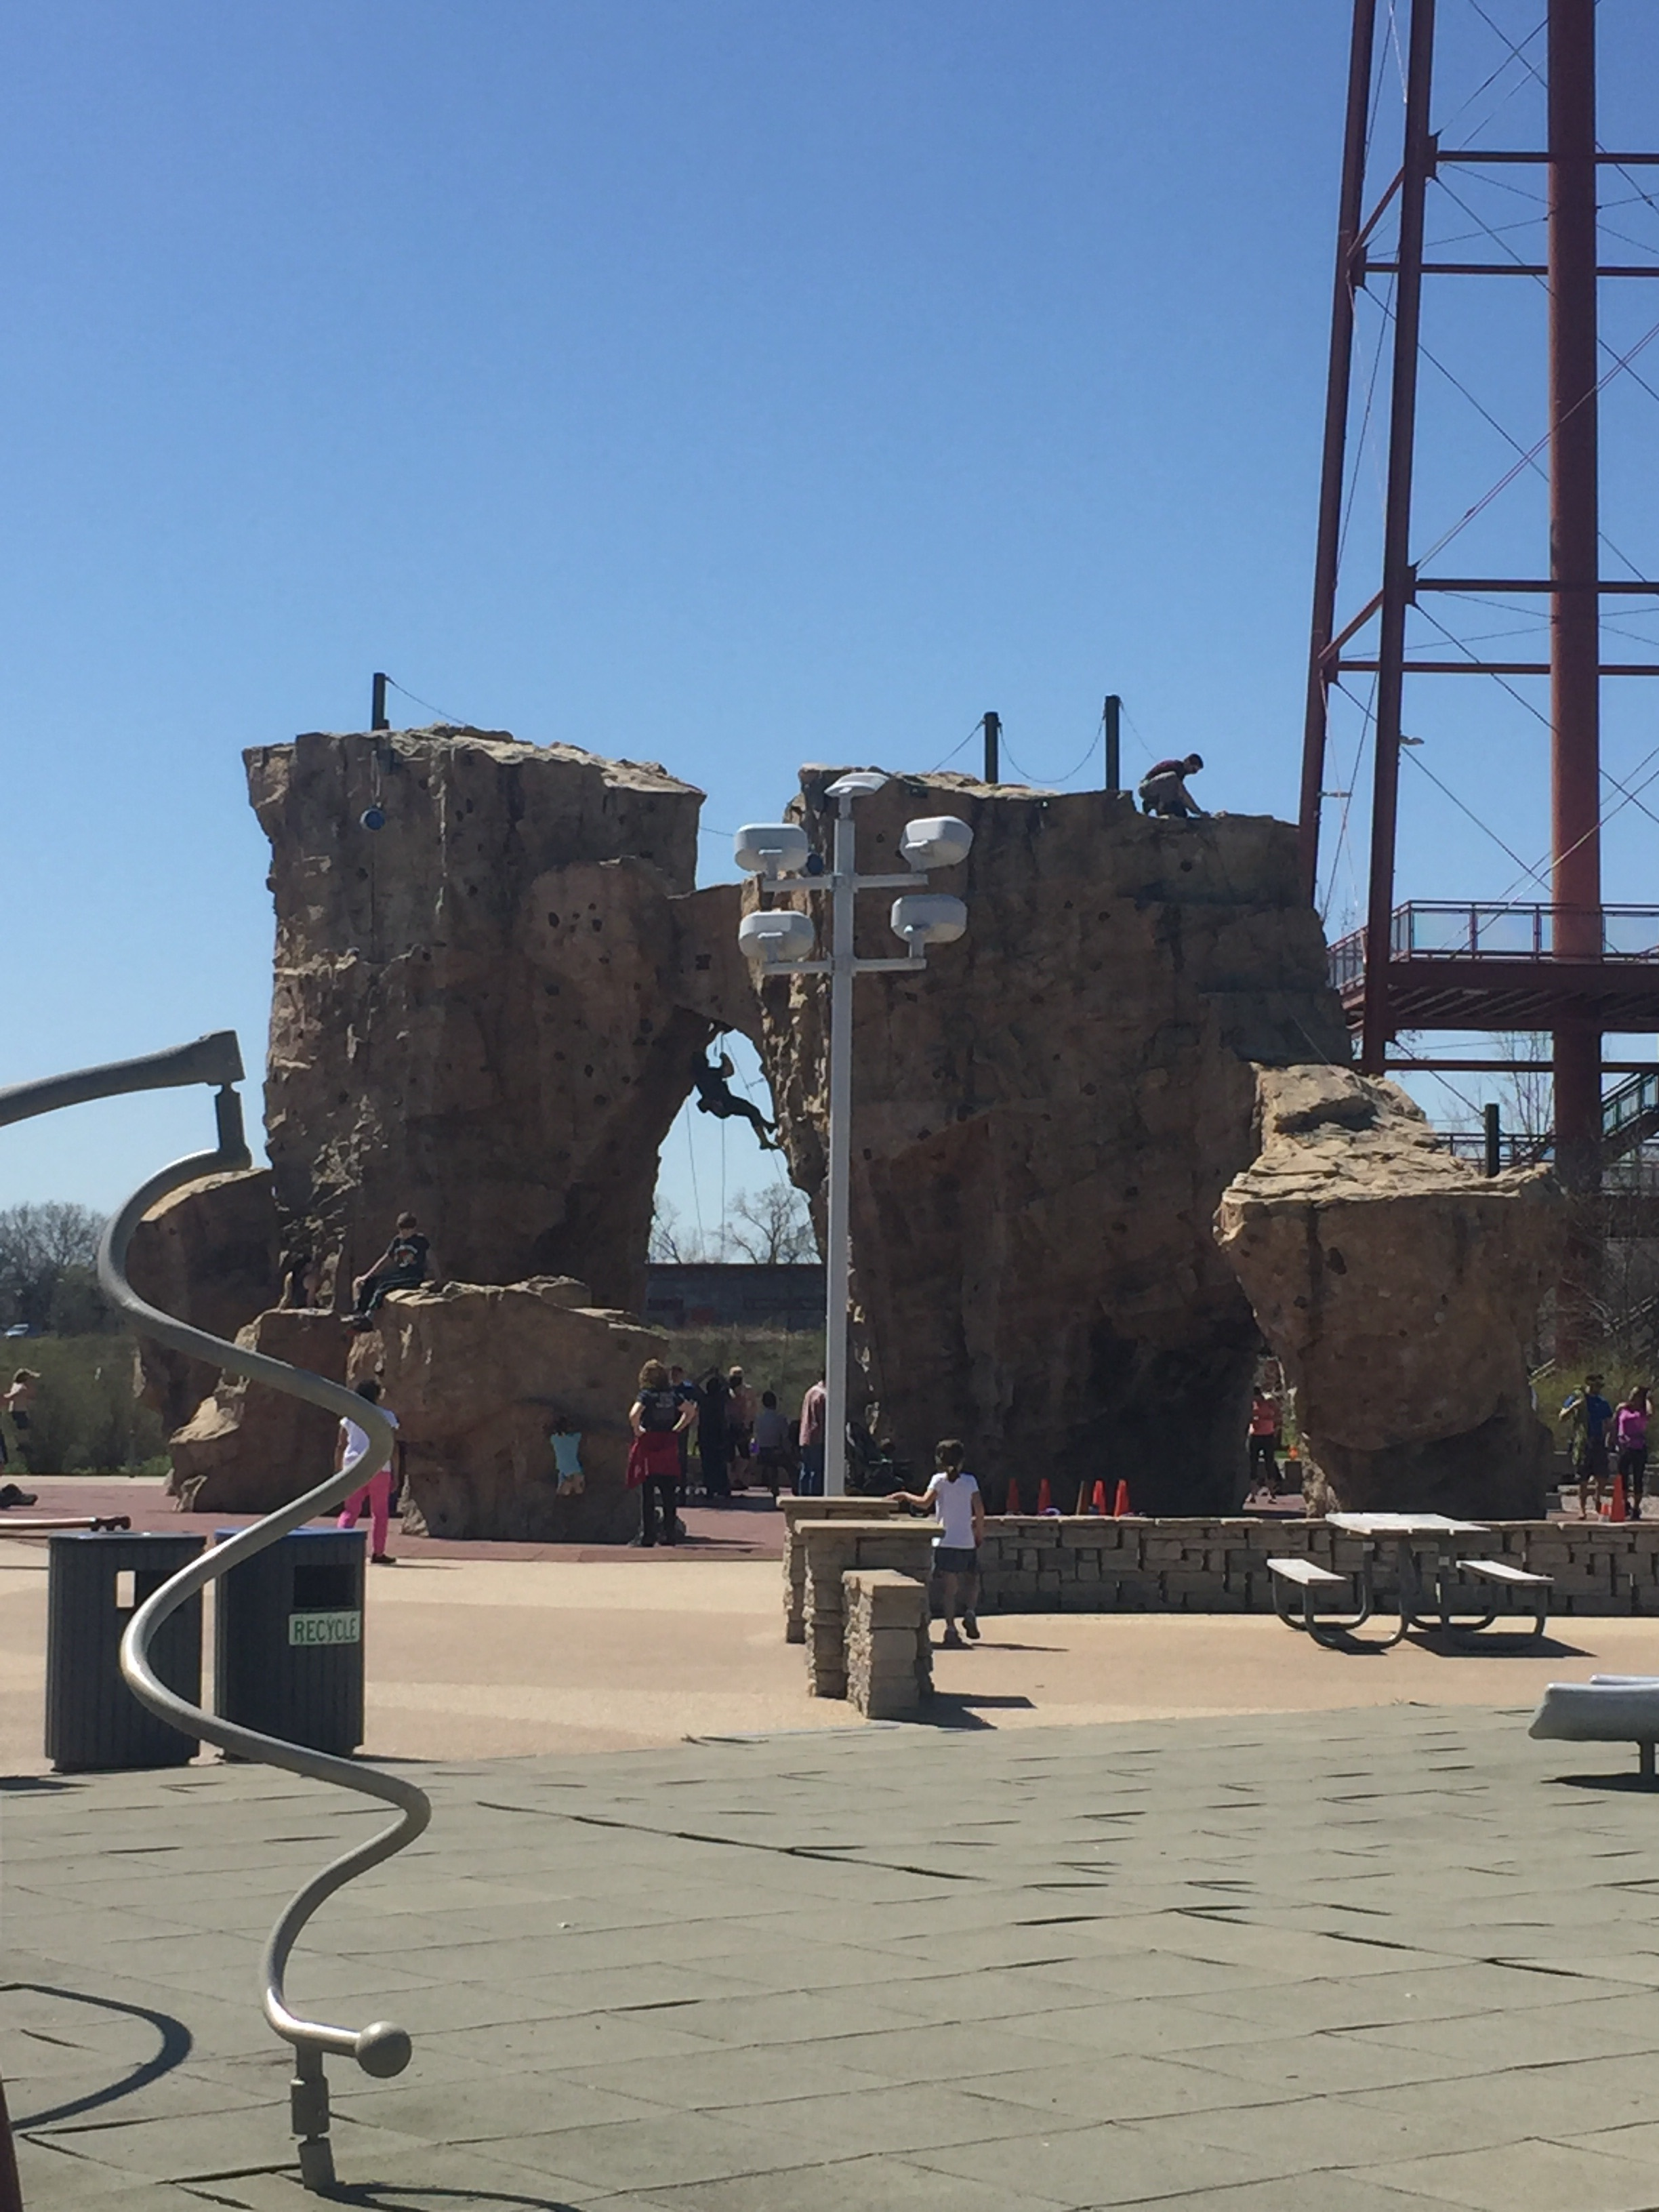 Watch some rock climbing while you play on the playground!